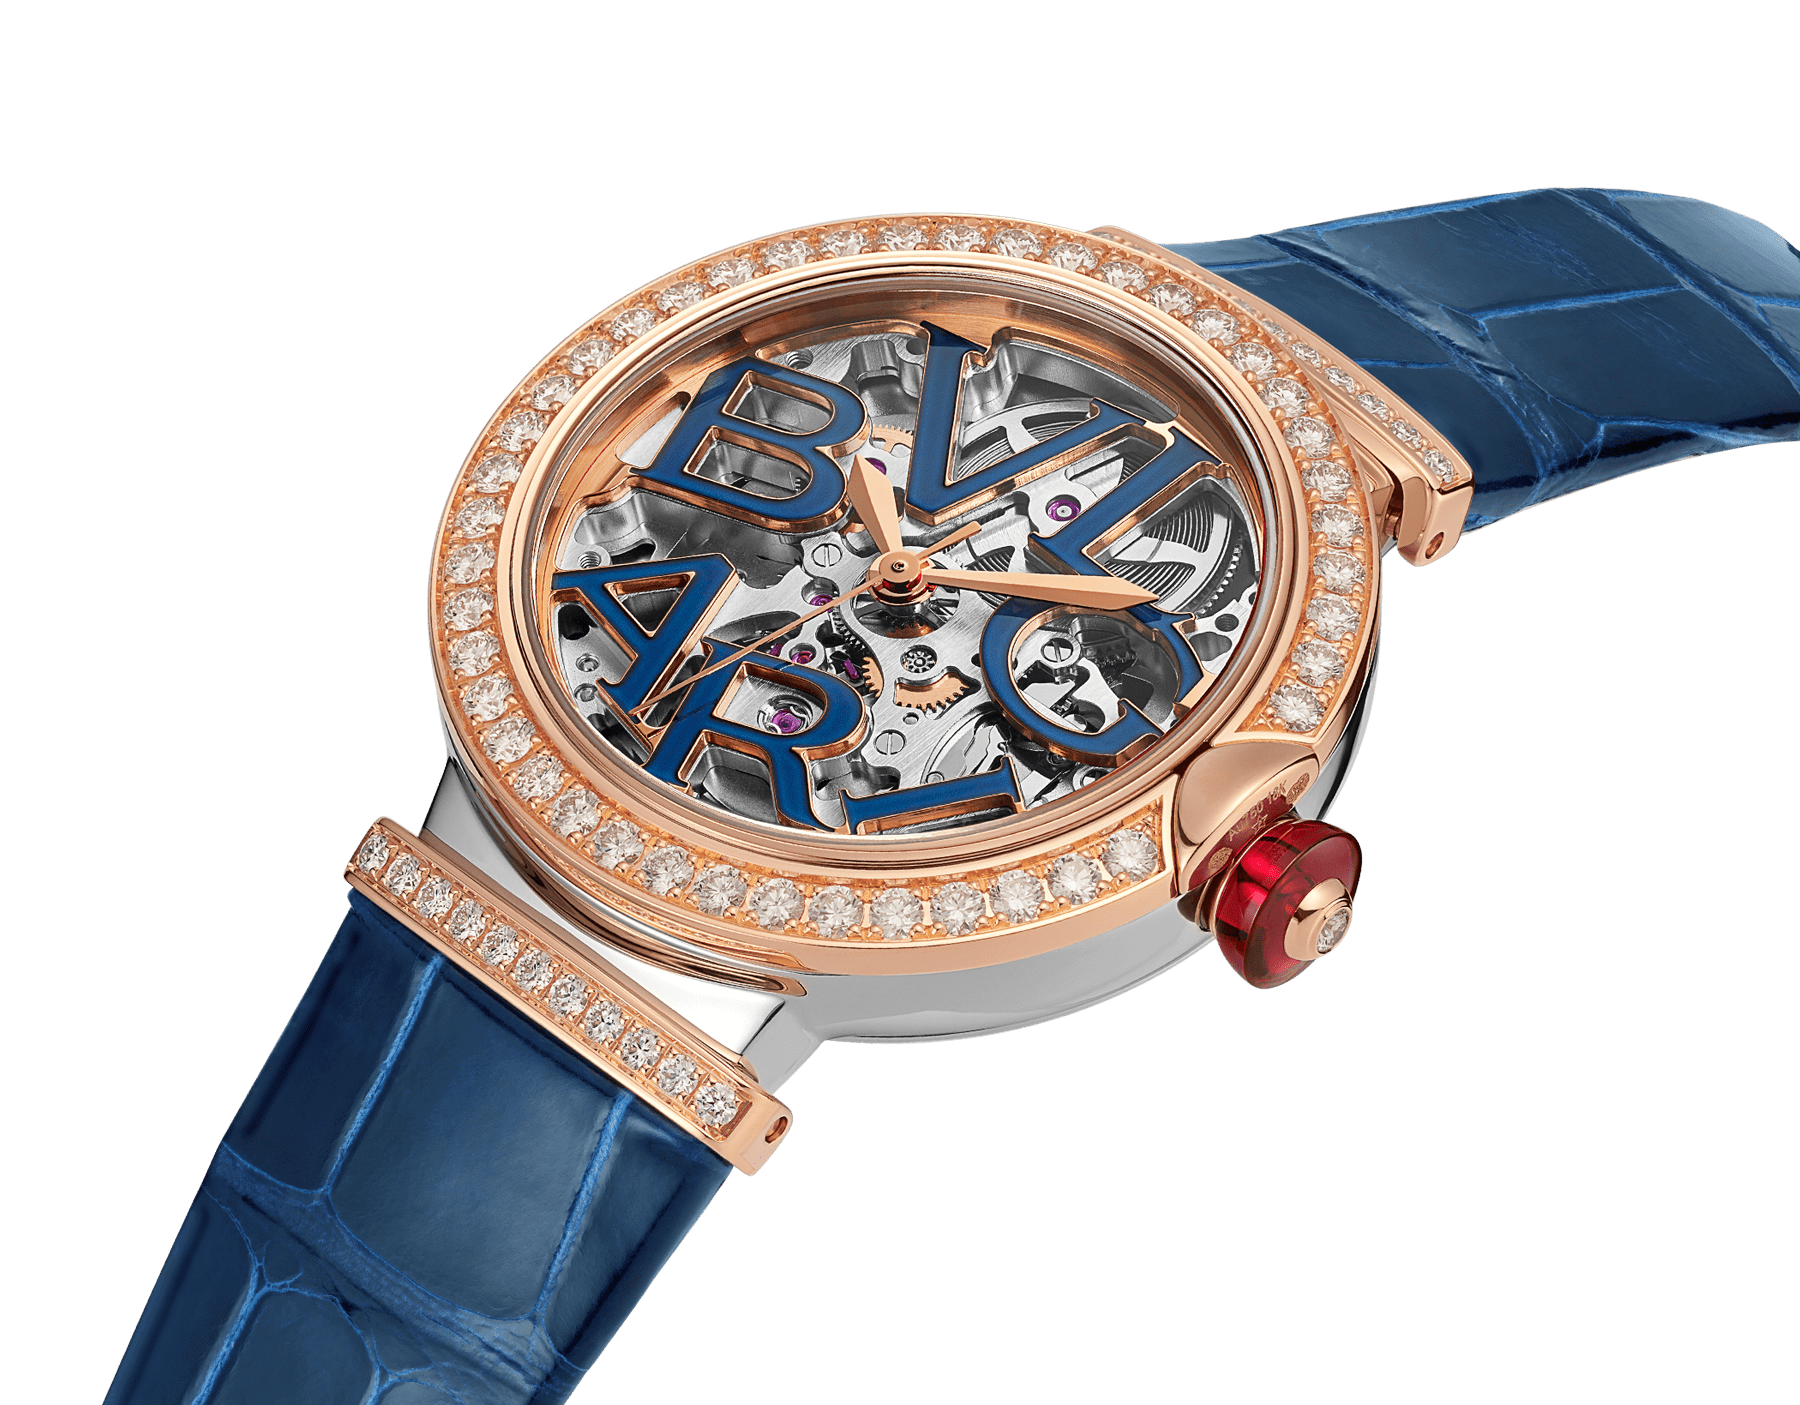 LVCEA Skeleton watch with mechanical manufacture movement, automatic winding and skeleton execution, polished stainless steel case, 18 kt rose gold bezel and links set with diamonds, blue lacquered openwork BVLGARI logo dial and blue alligator bracelet. Water-resistant up to 30 metres 103304 image 2